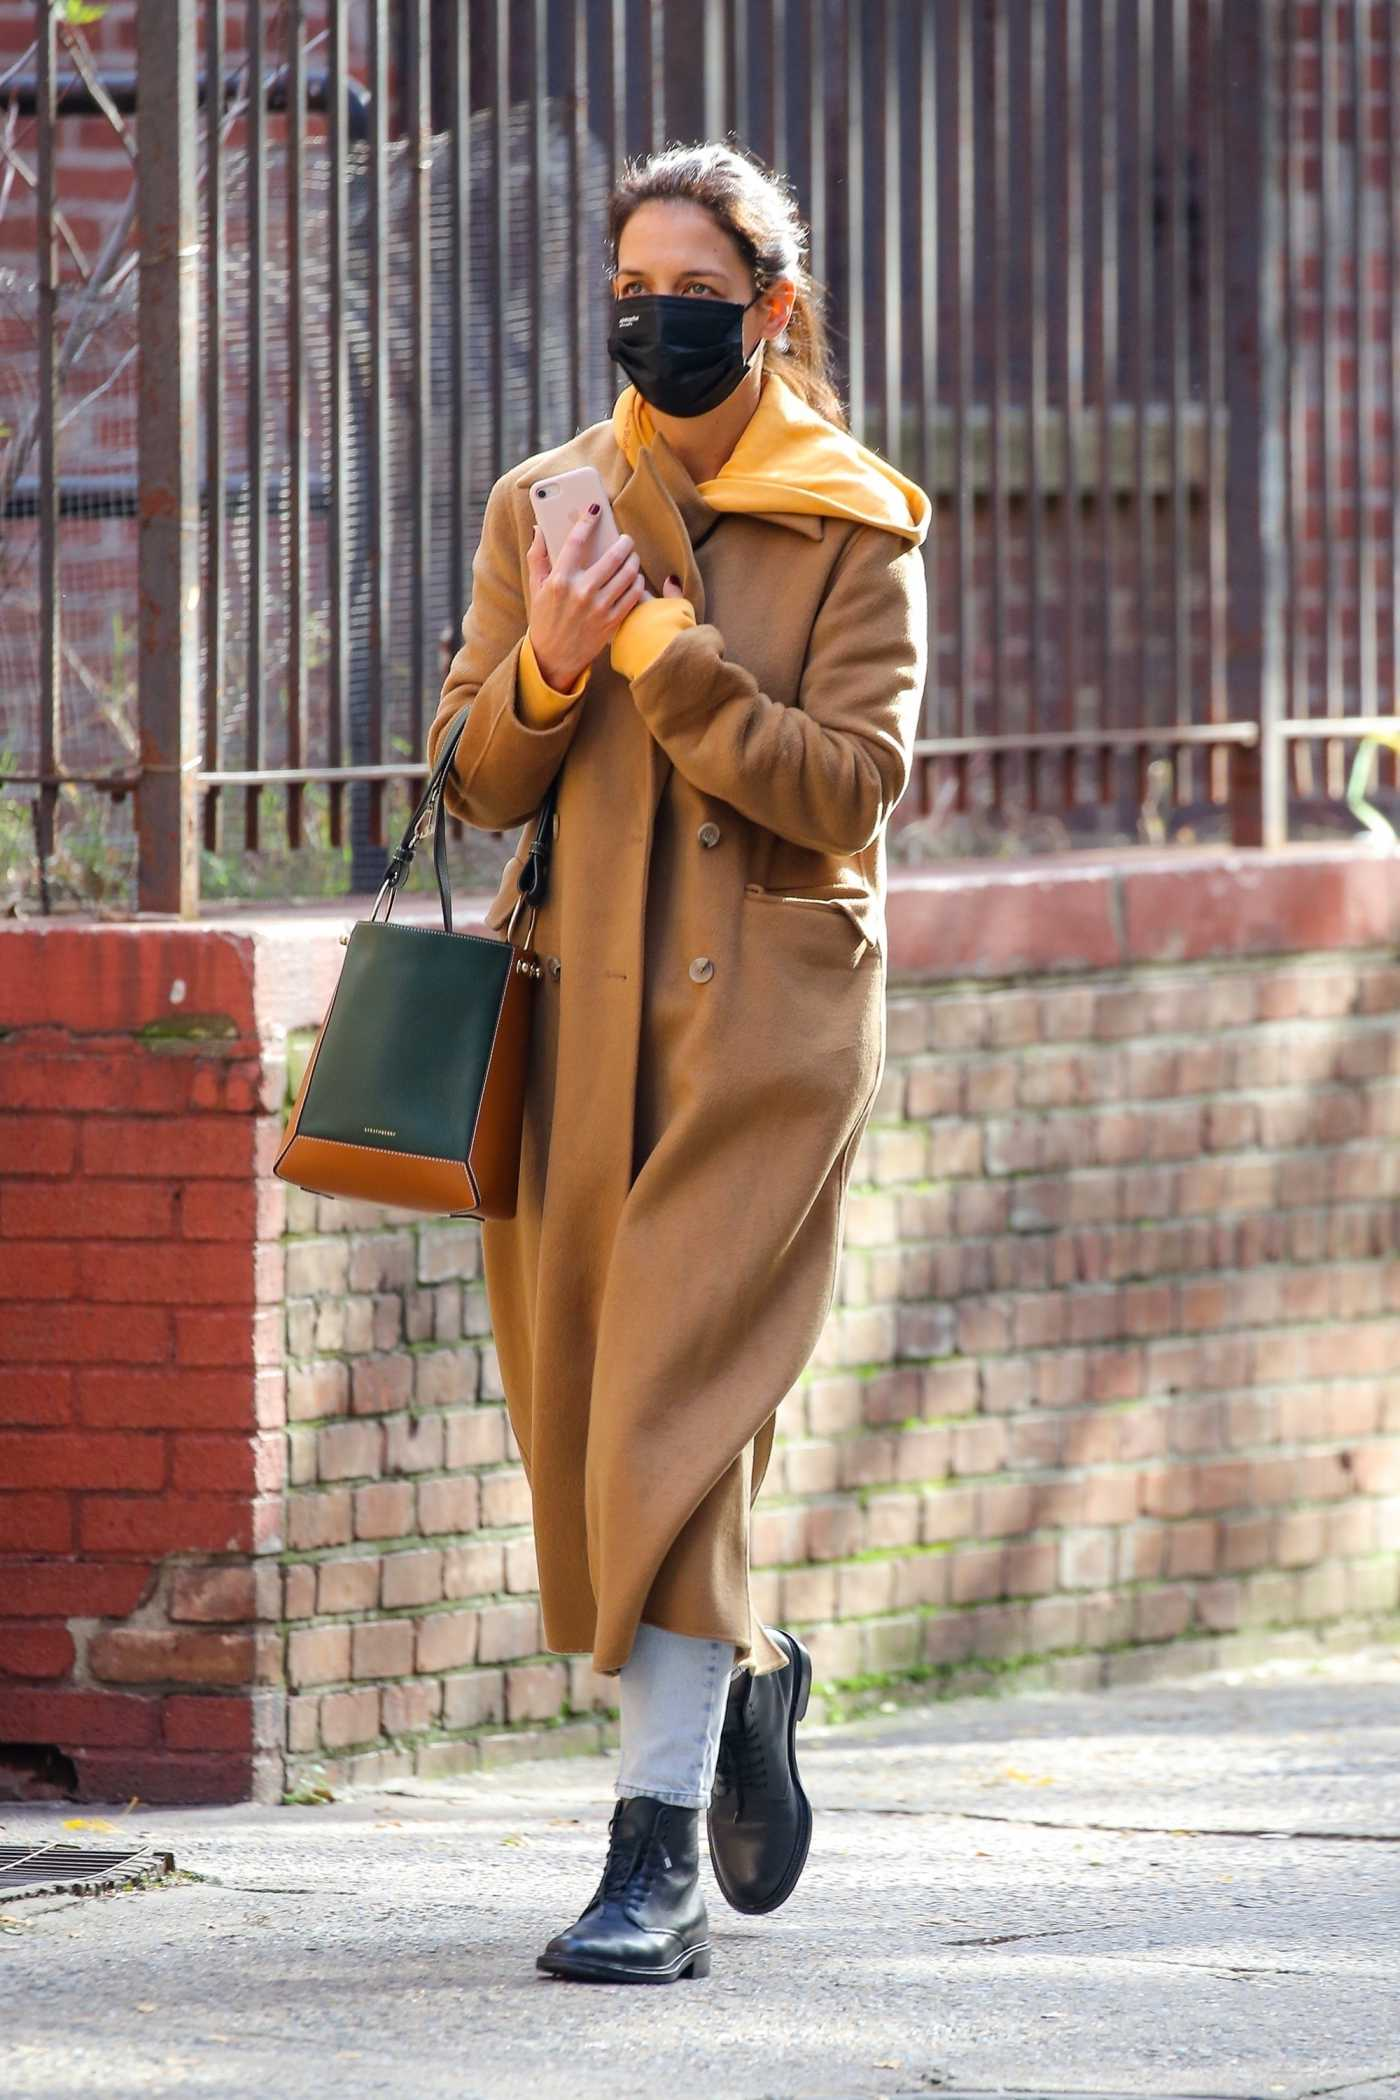 Katie Holmes in a Beige Coat Was Seen Out with Emilio Vitolo Jr. in Soho, New York 11/03/2020